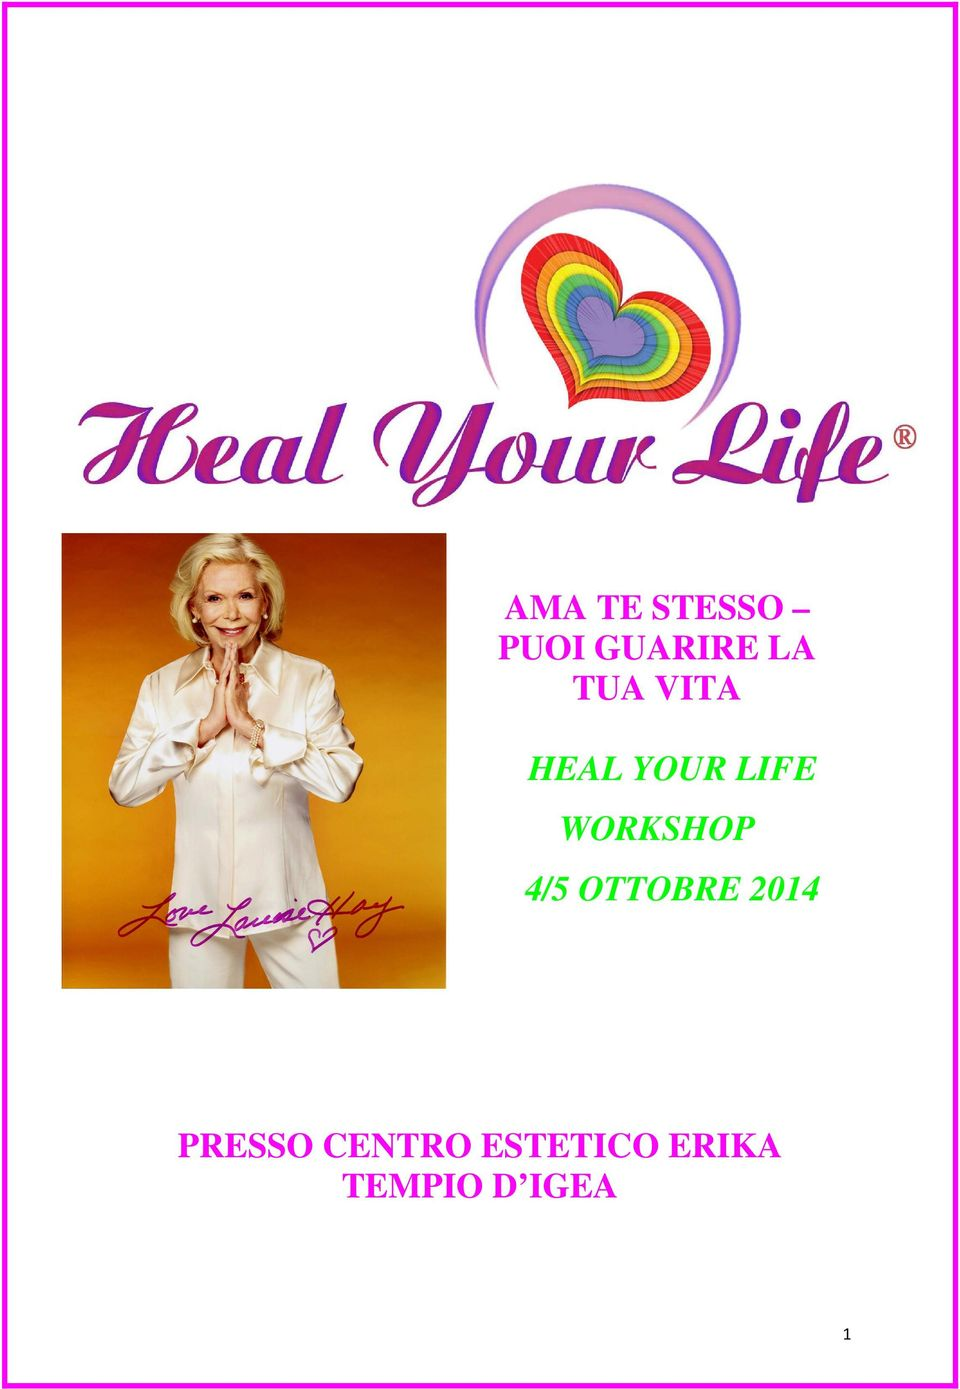 WORKSHOP 4/5 OTTOBRE 2014